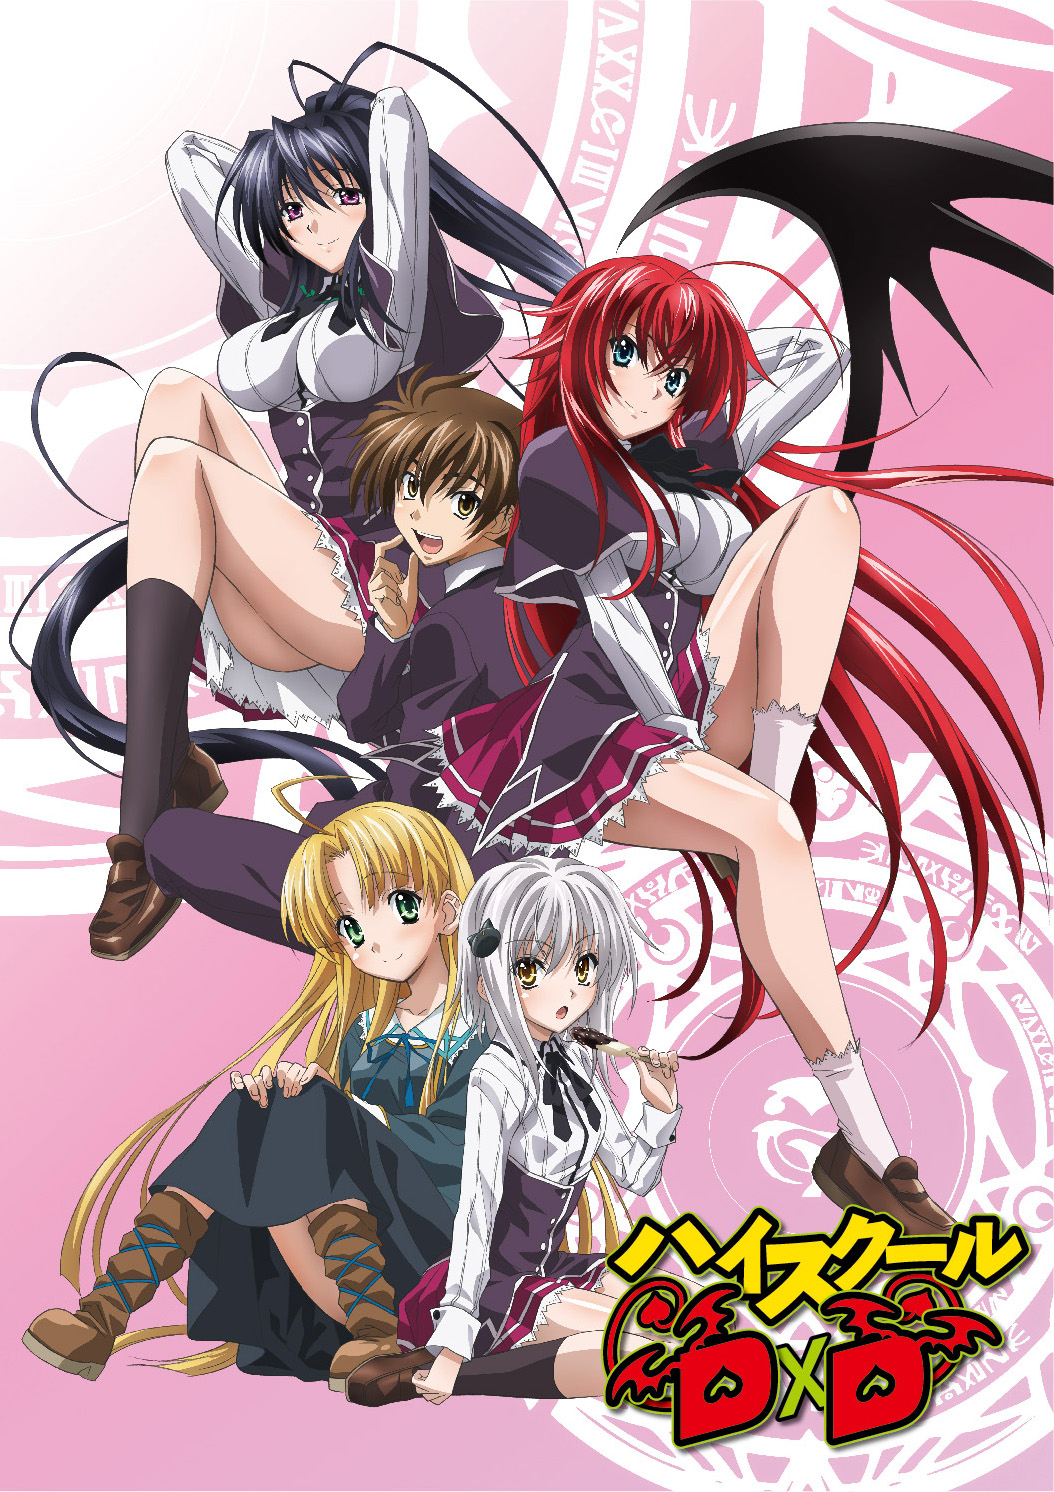 HentaiStream.com High School DxD Episode 1